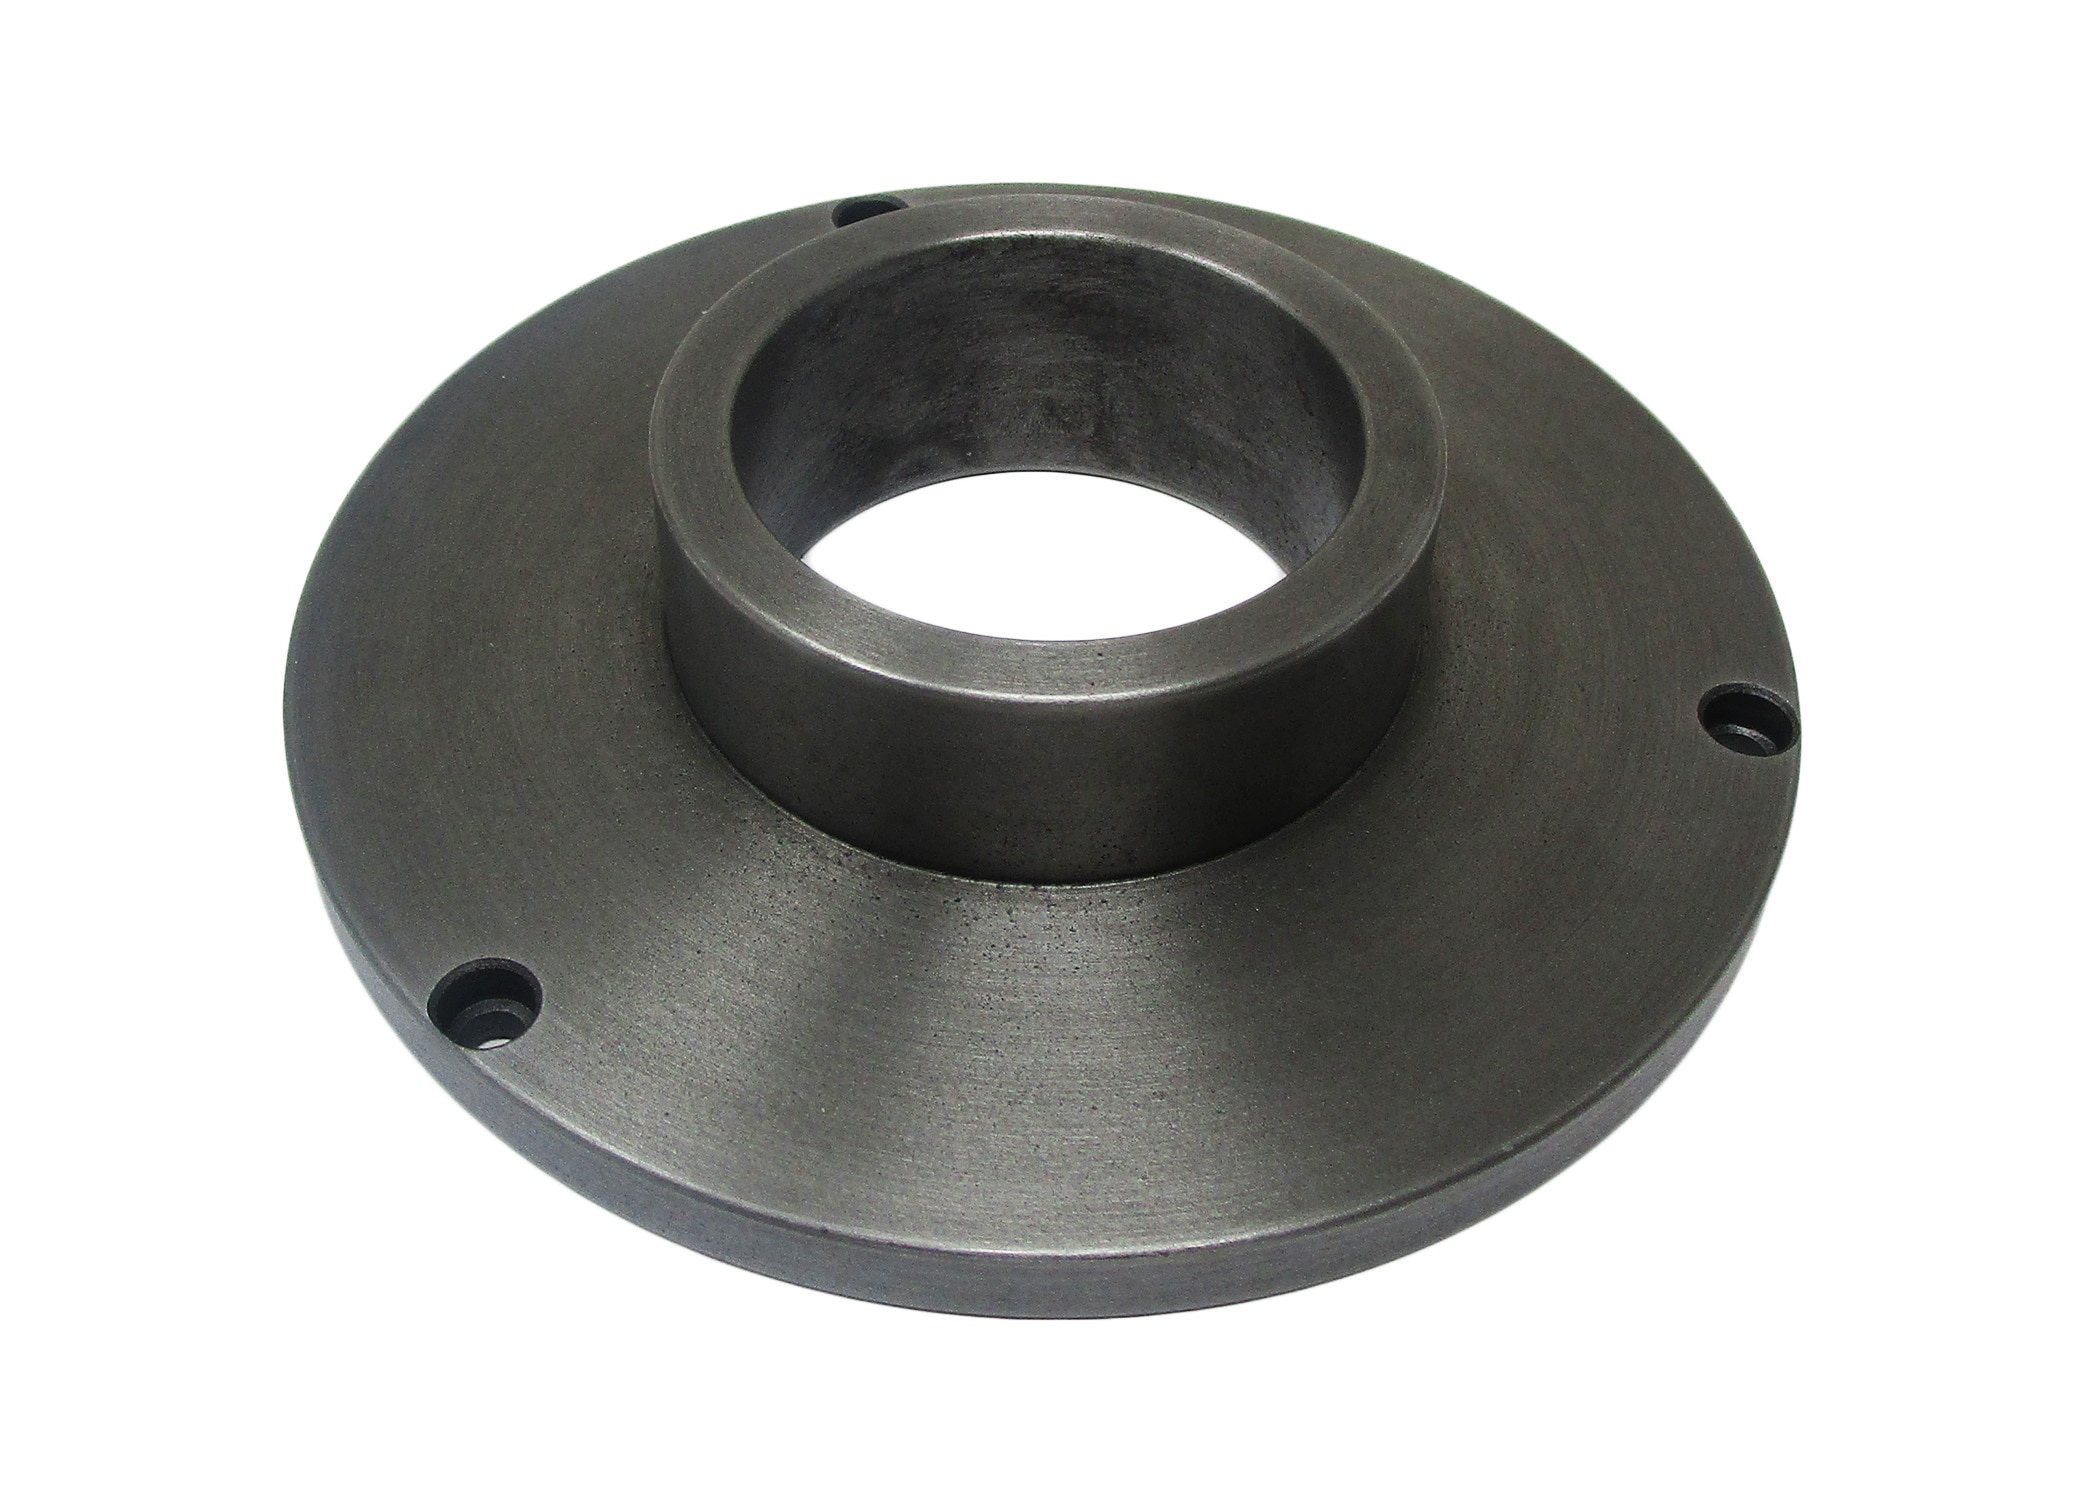 JET — Table Insert for Powermatic TS29 Tilting Spindle Shaper, 2-1/2 ID